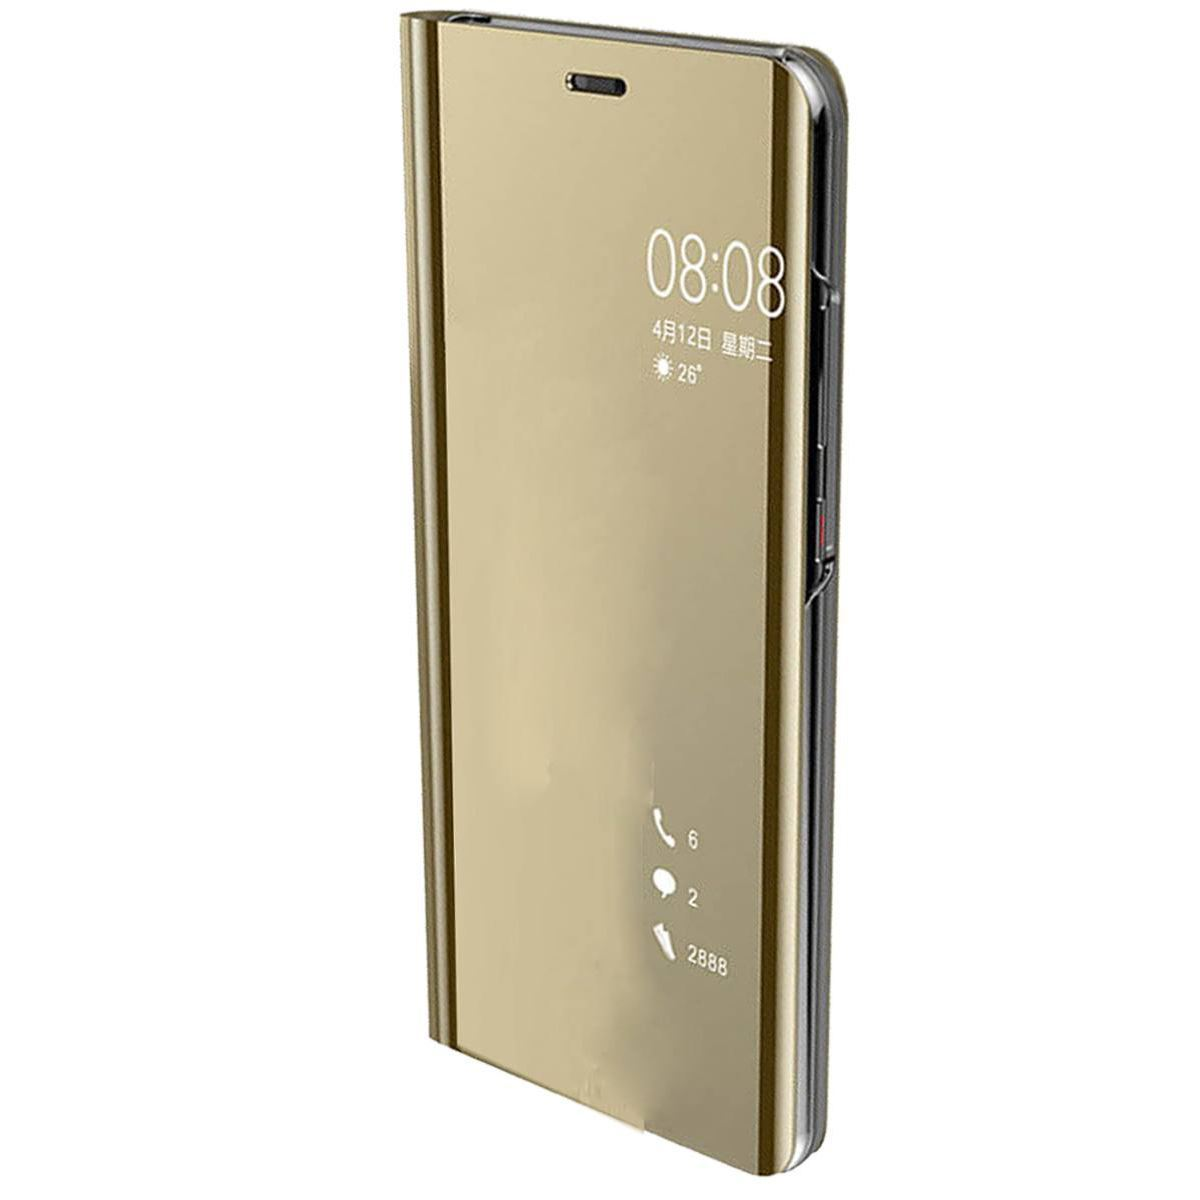 Huawei P Smart Case Smart View Mirror Flip Stand Cover - Gold